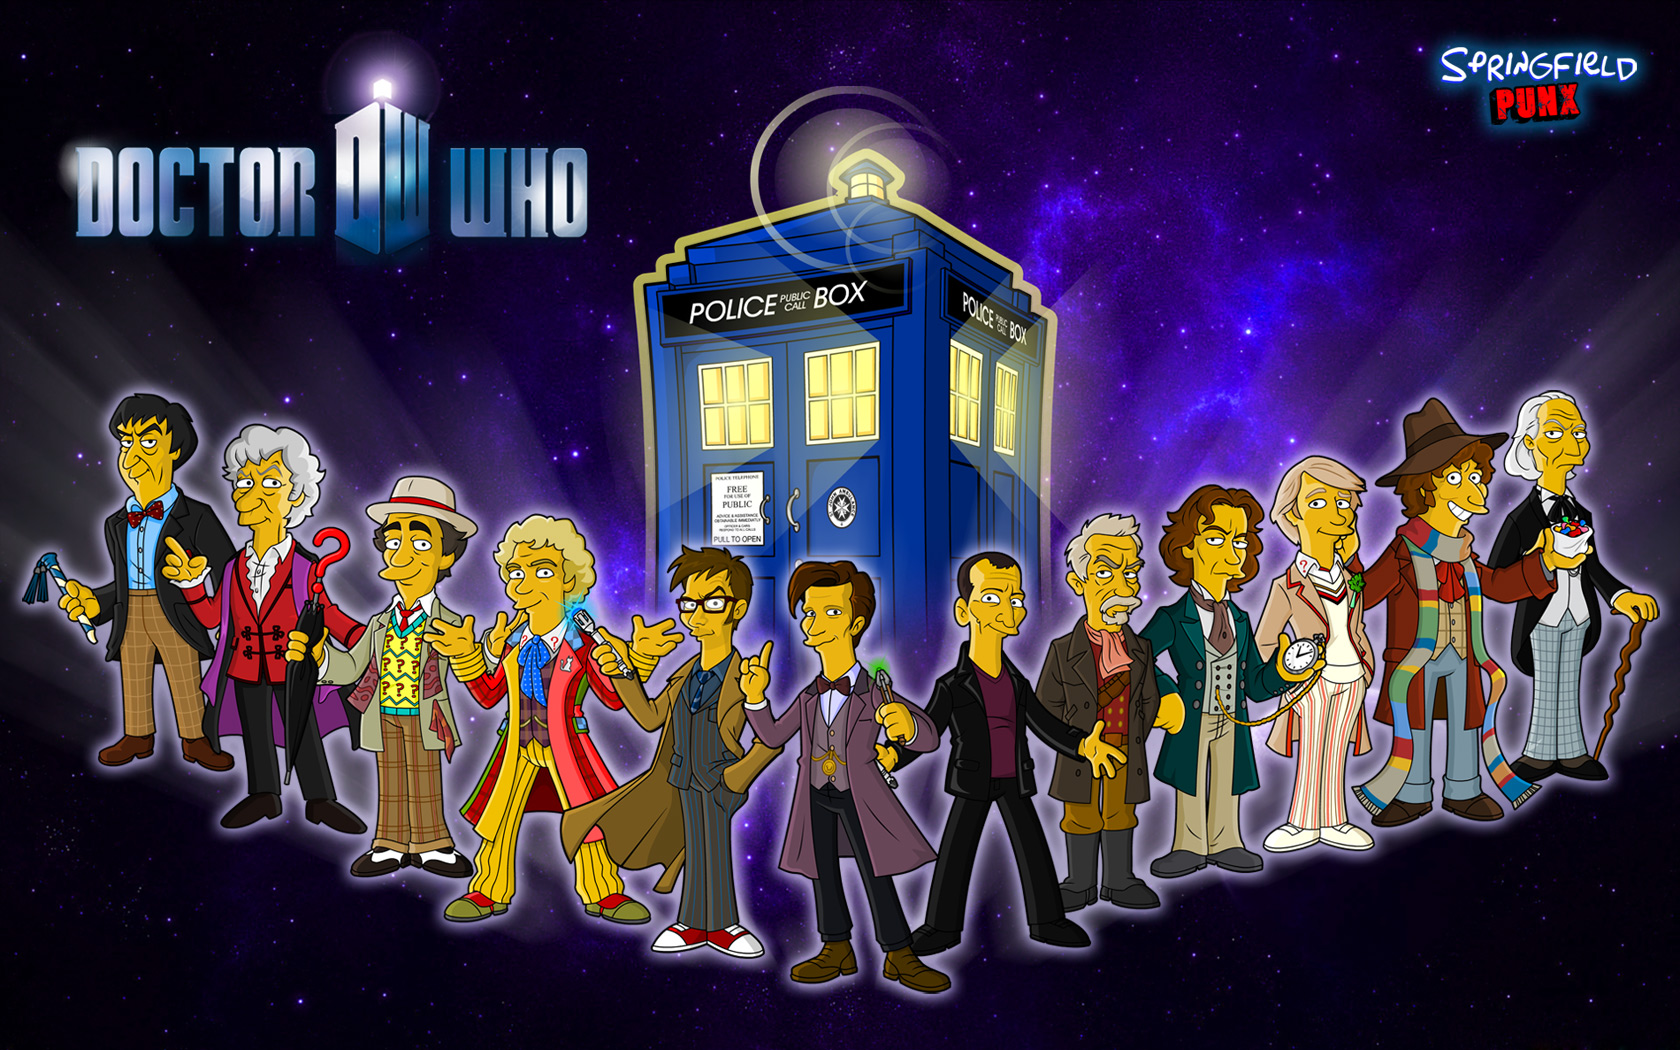 Doctor Who Wallpaper High Quality simpsons